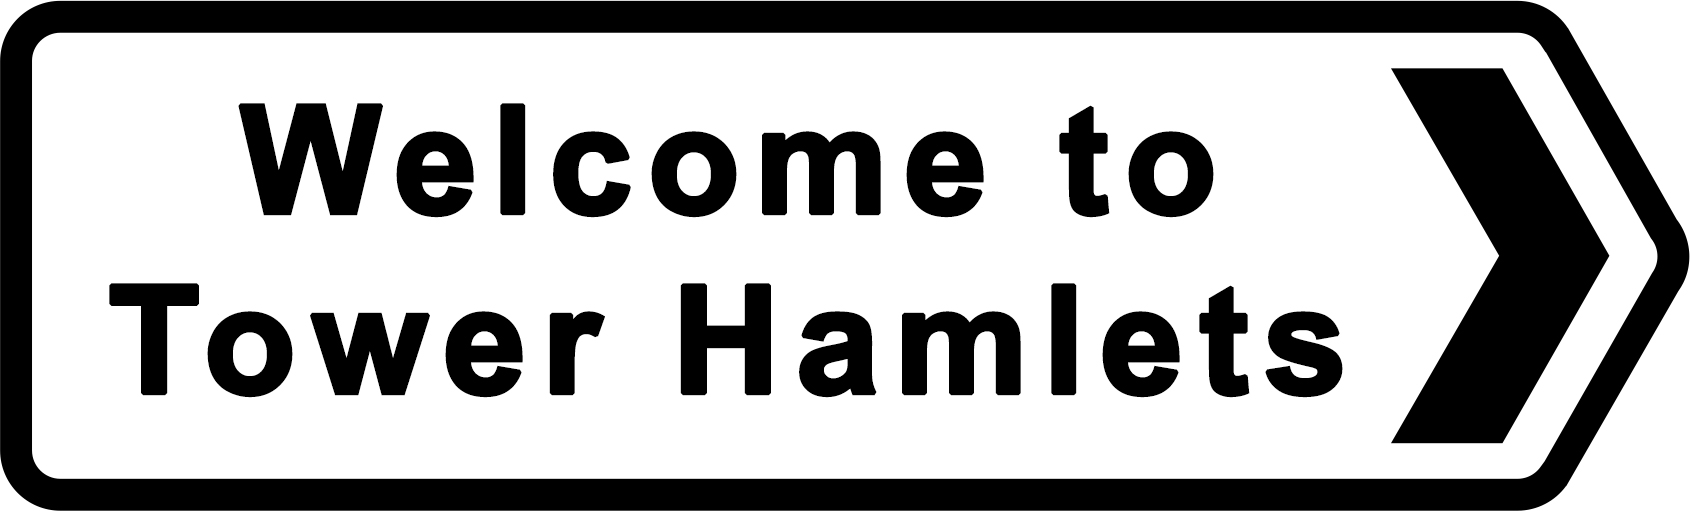 Tower Hamlet's coat of arms - Cheap Driving Schools Lessons in London borough of Tower Hamlets, East London E14, Greater London